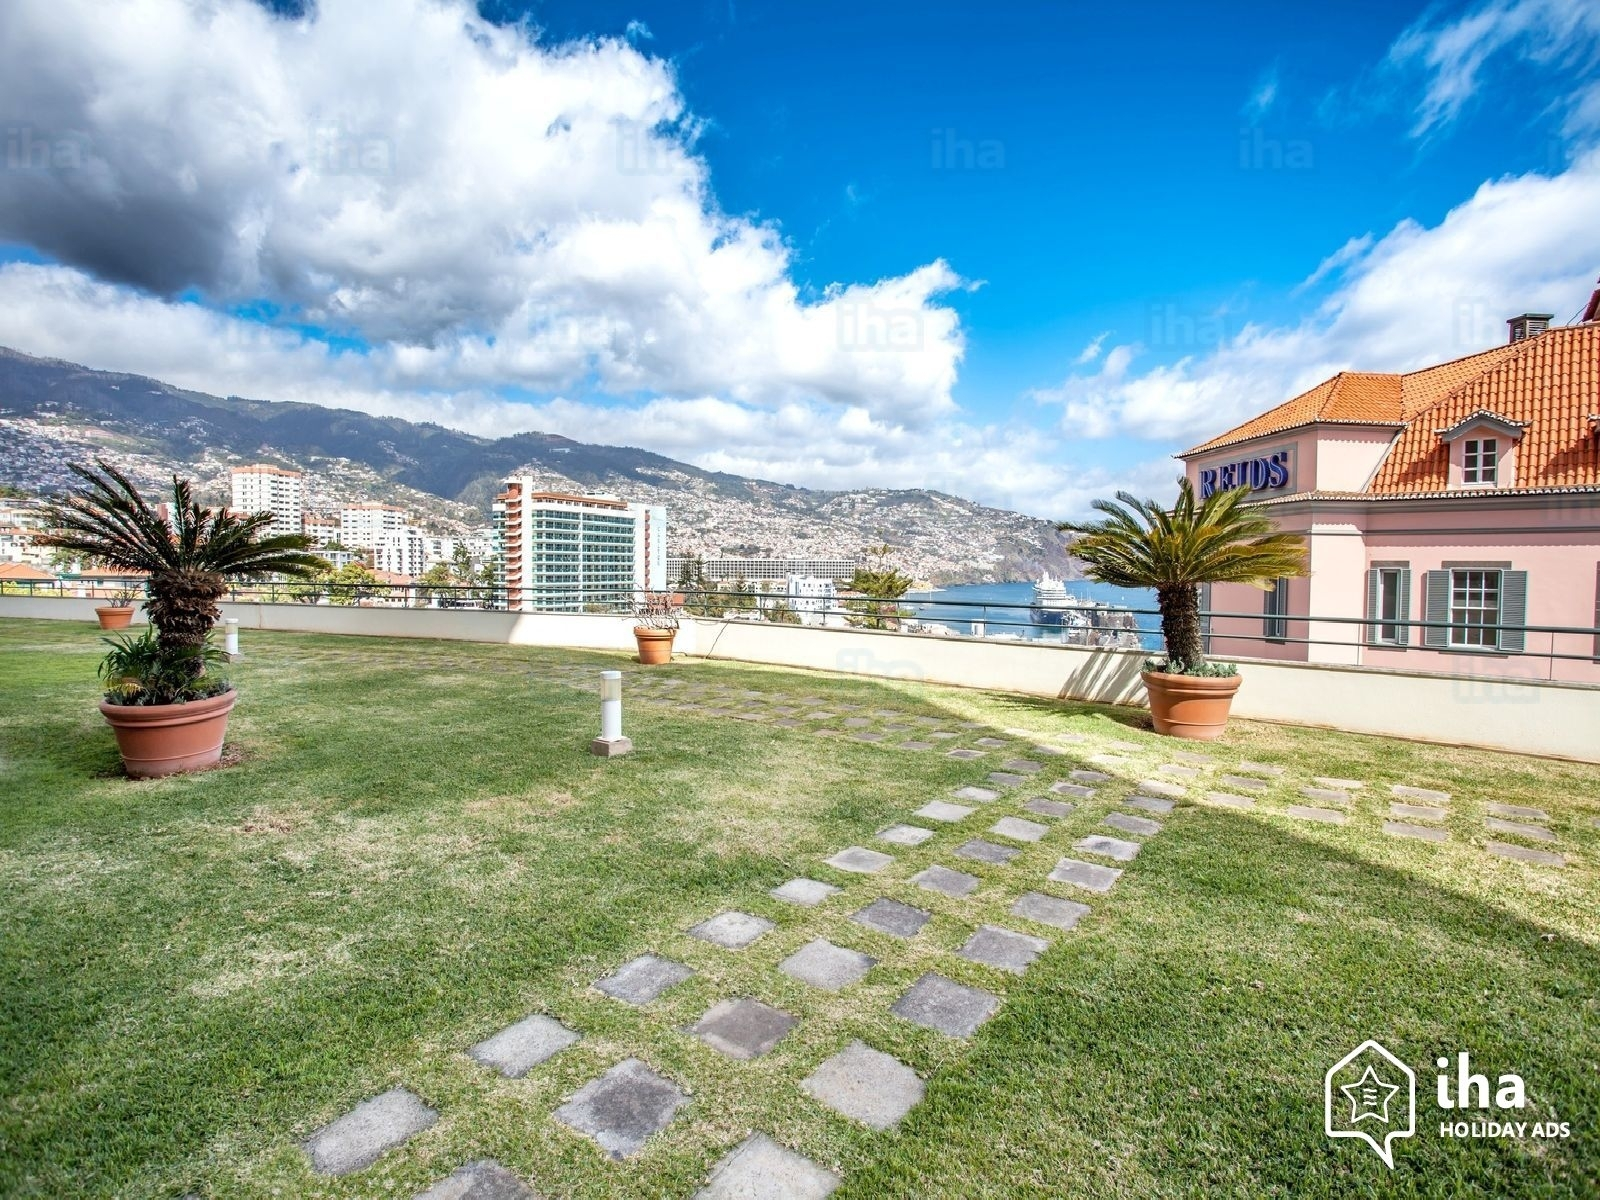 Flat-Apartments For Rent In Funchal Iha 33060 intended for Garden On Flat Apartment